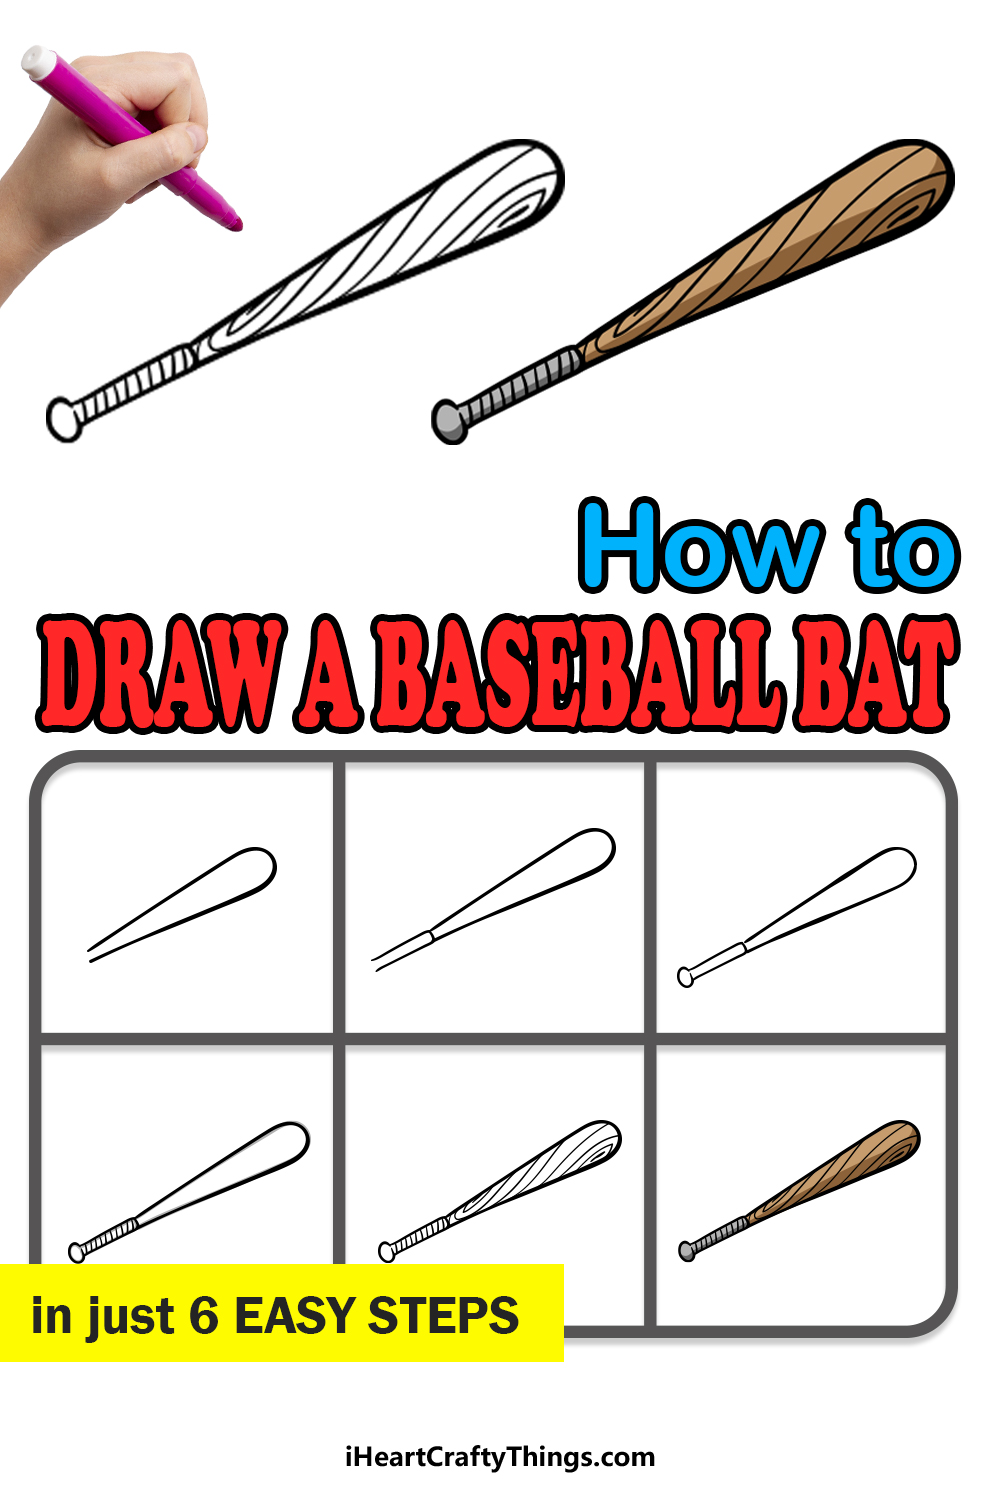 how to draw a baseball bat in 6 easy steps